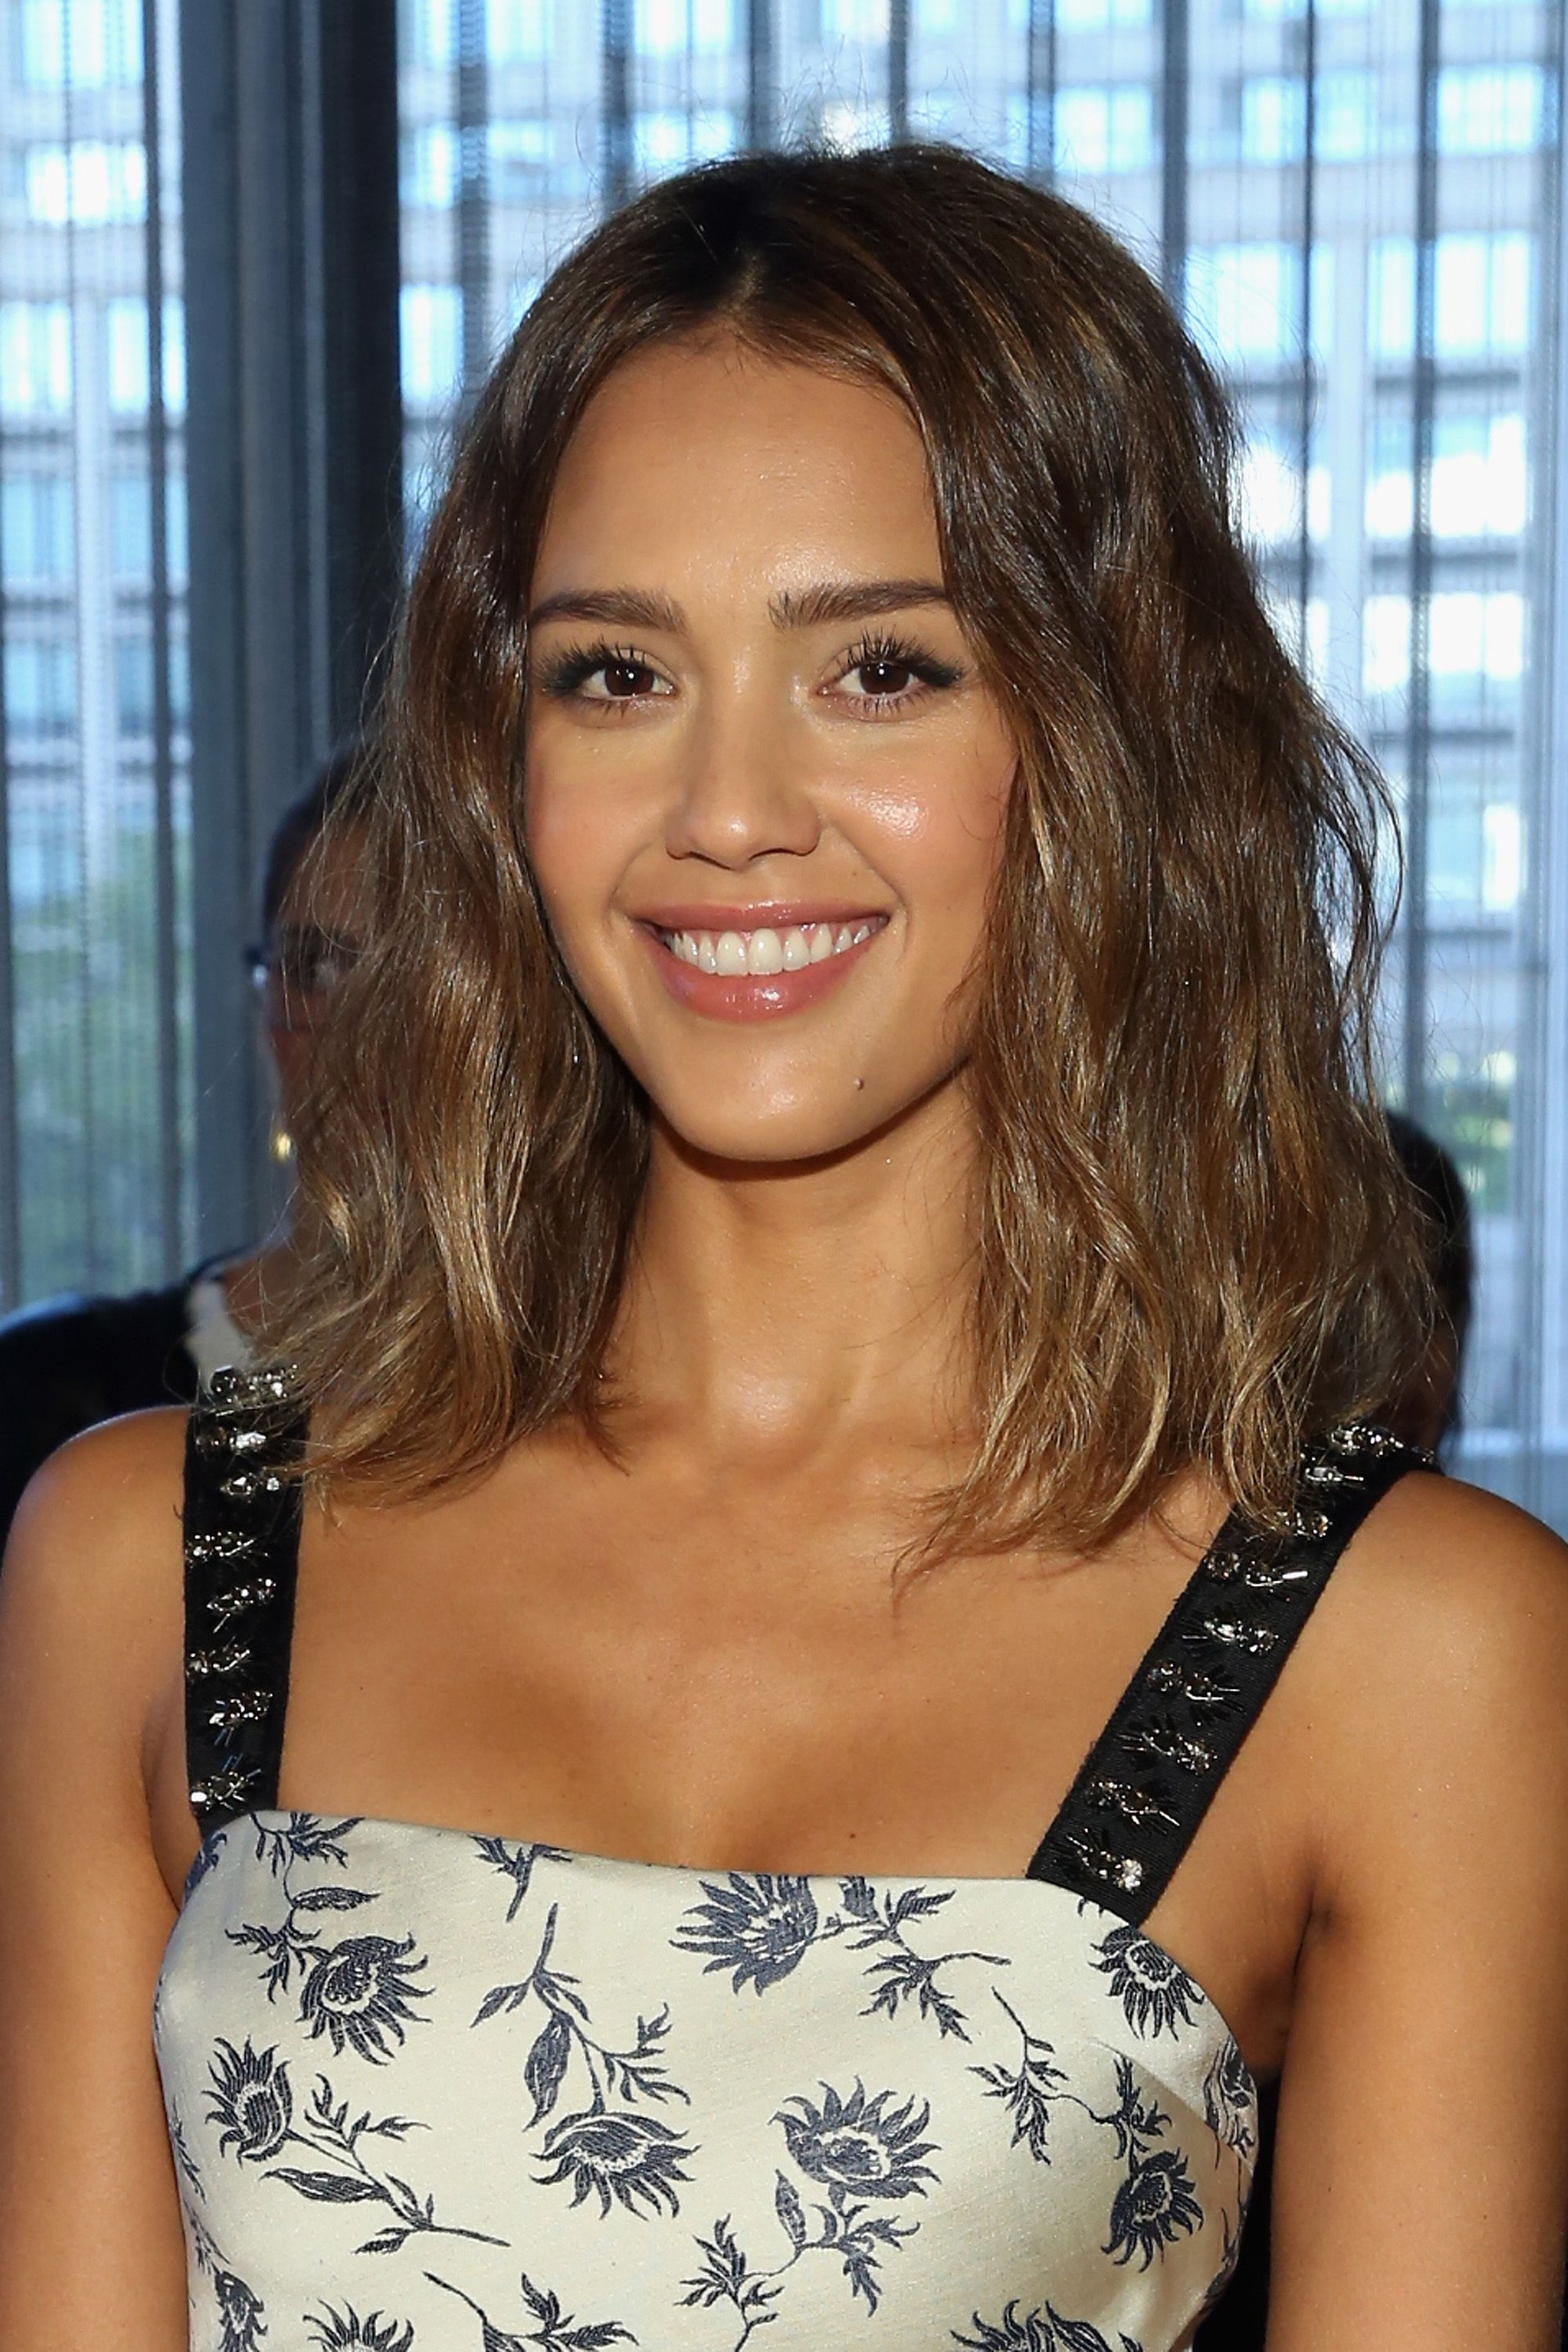 "<p>While actress and Honest Company cofounder Jessica Alba is partial to using her own brand's shampoo and conditioner, she's also fond of whipping up DIY masks with avocado and a blend of coconut and olive oils. ""My haircut makes styling so low-key,"" she says. ""I use John Masters Organics Leave-In Conditioning Mist at the roots, muss my hair with my fingers, spritz with his Sea Mist Sea Salt Spray with Lavender, and I'm all set.""</p>"